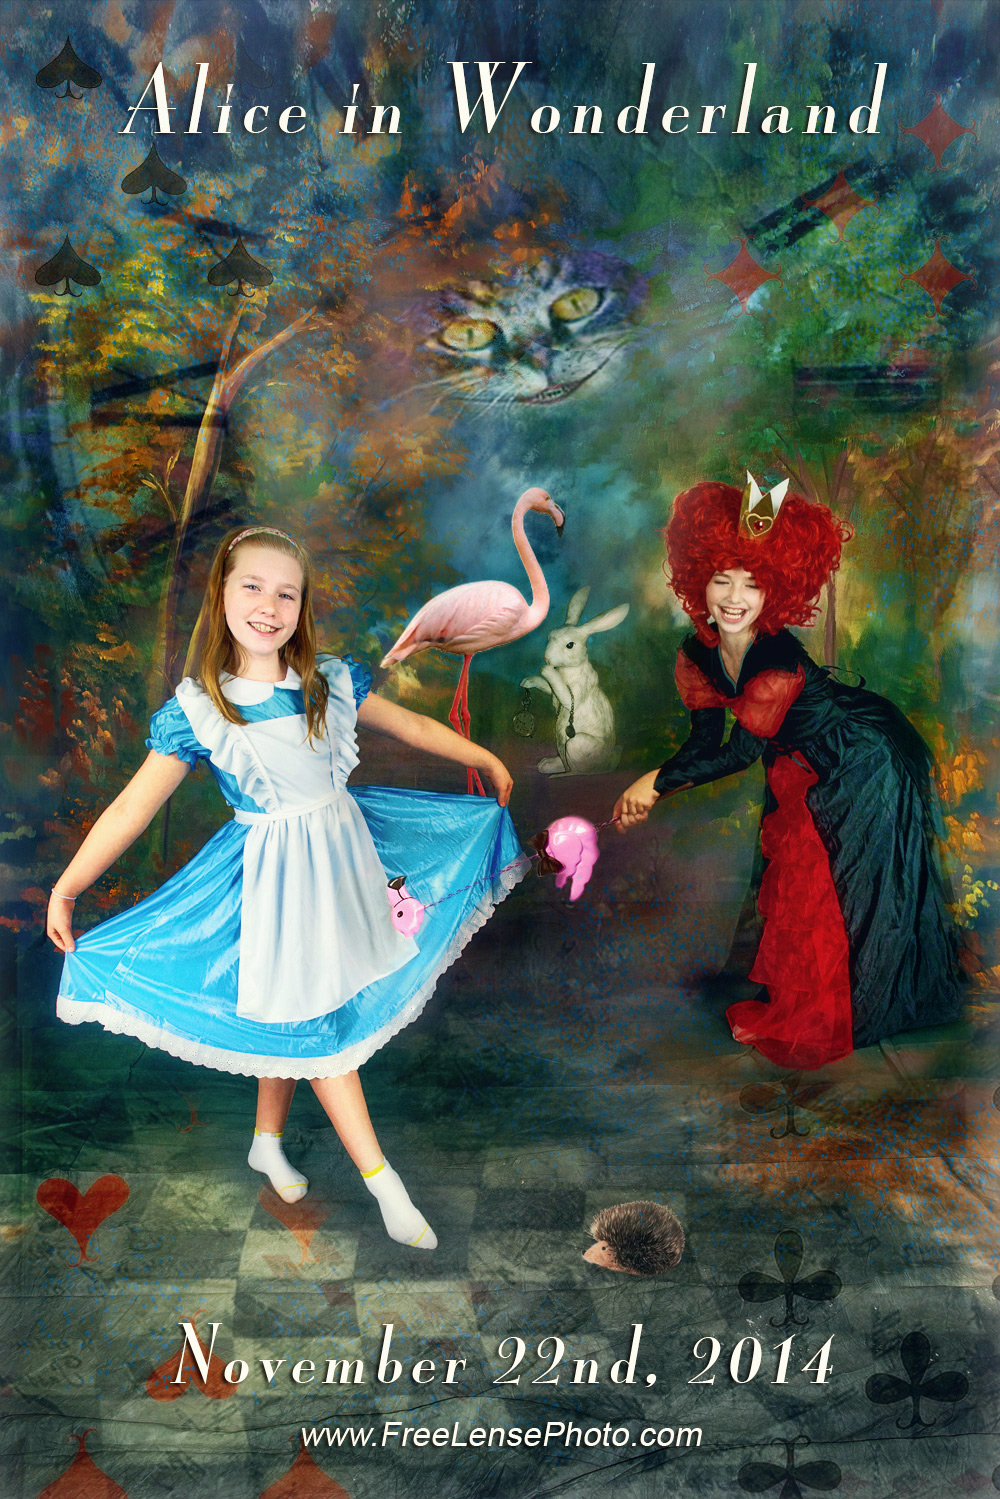 alice-in-wonderland-by-free-lense.jpg